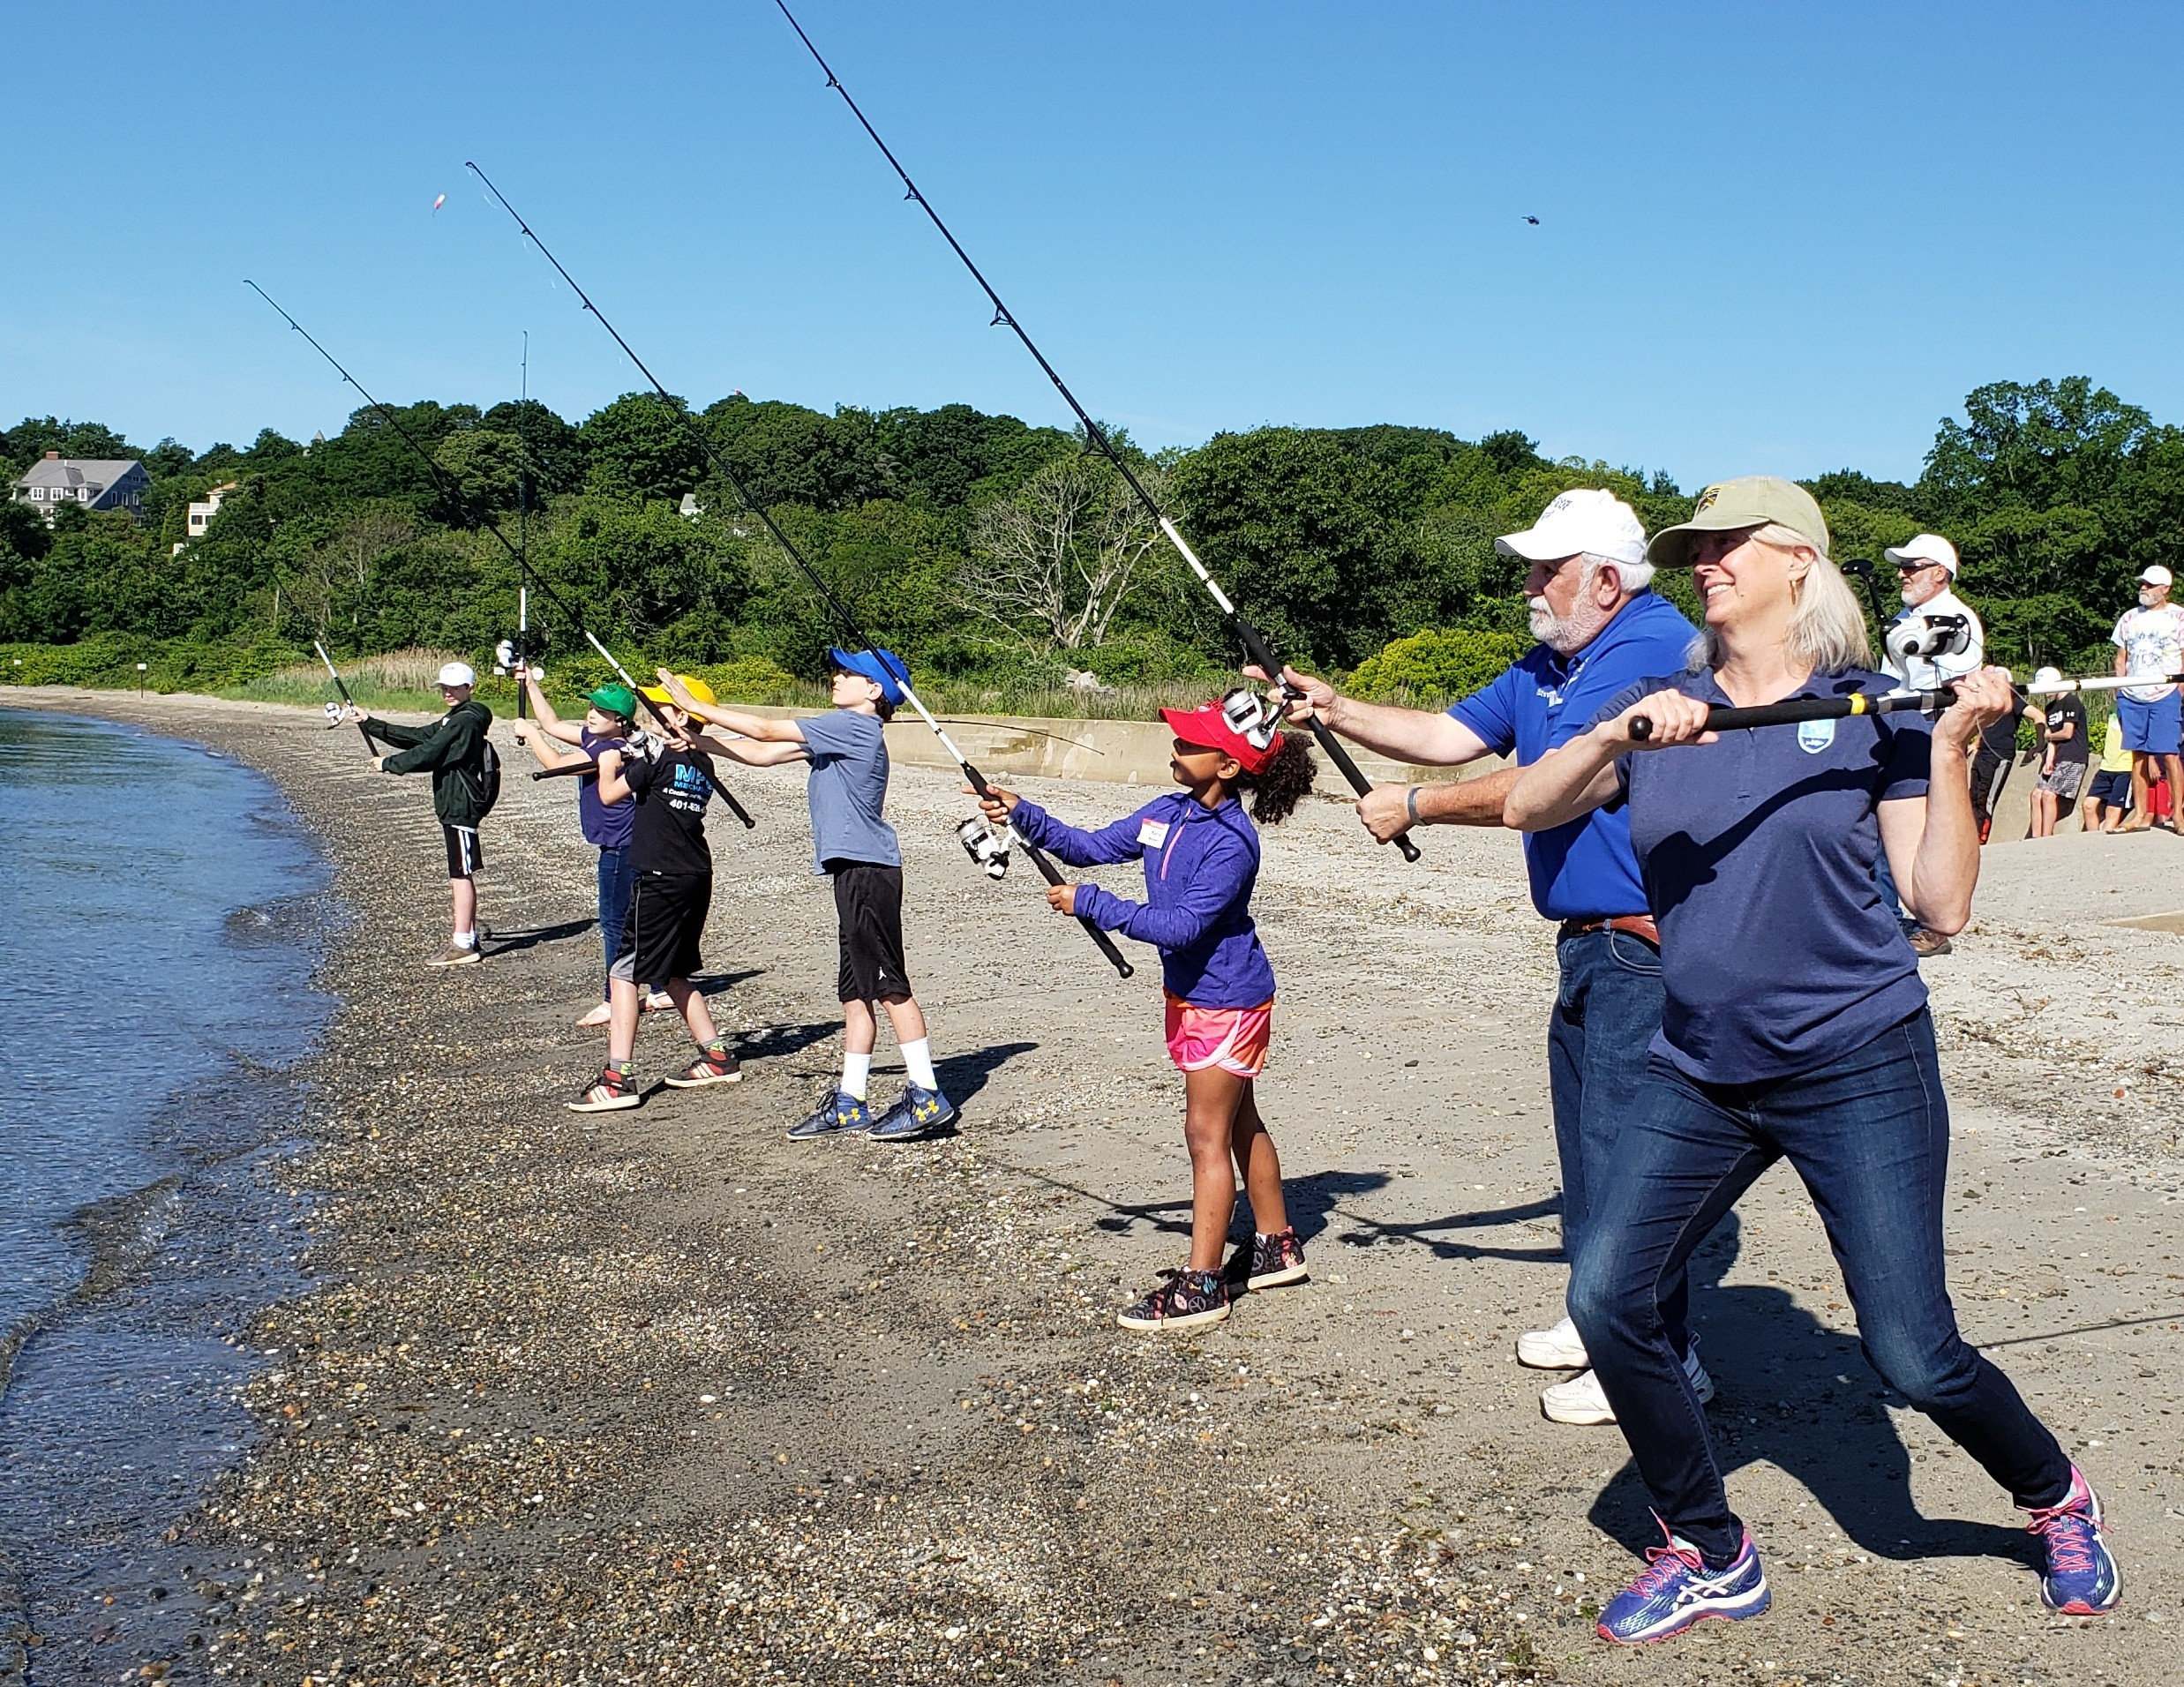 Janet Coit, DEM Director; Steve Medeiros, RISAA president/camp director; and camp participants held a cast-off to open the third annual RISAA Youth Fishing Camp.